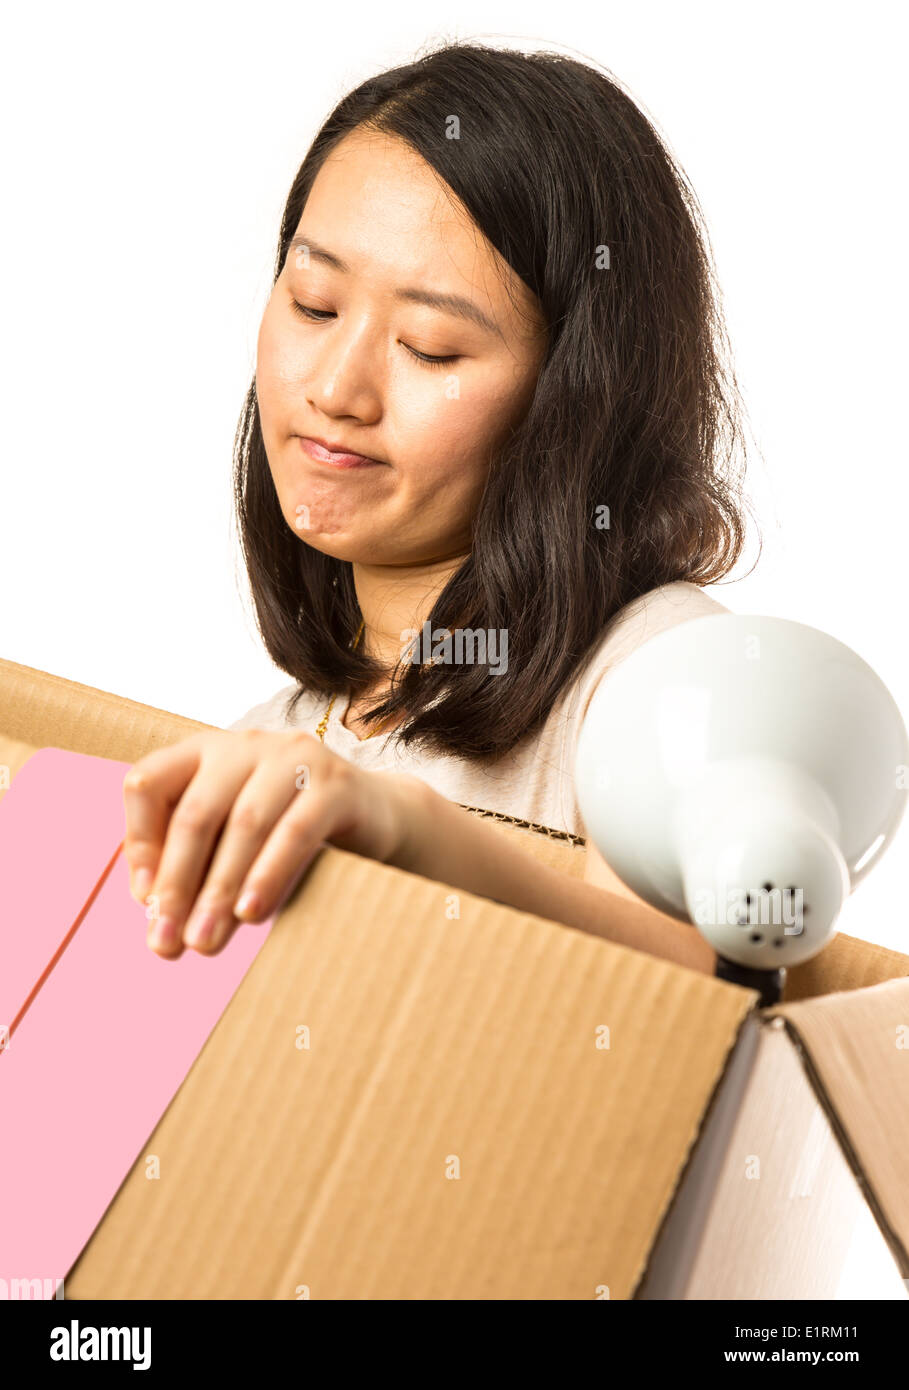 Asian woman with a moving box and pink slip - Stock Image